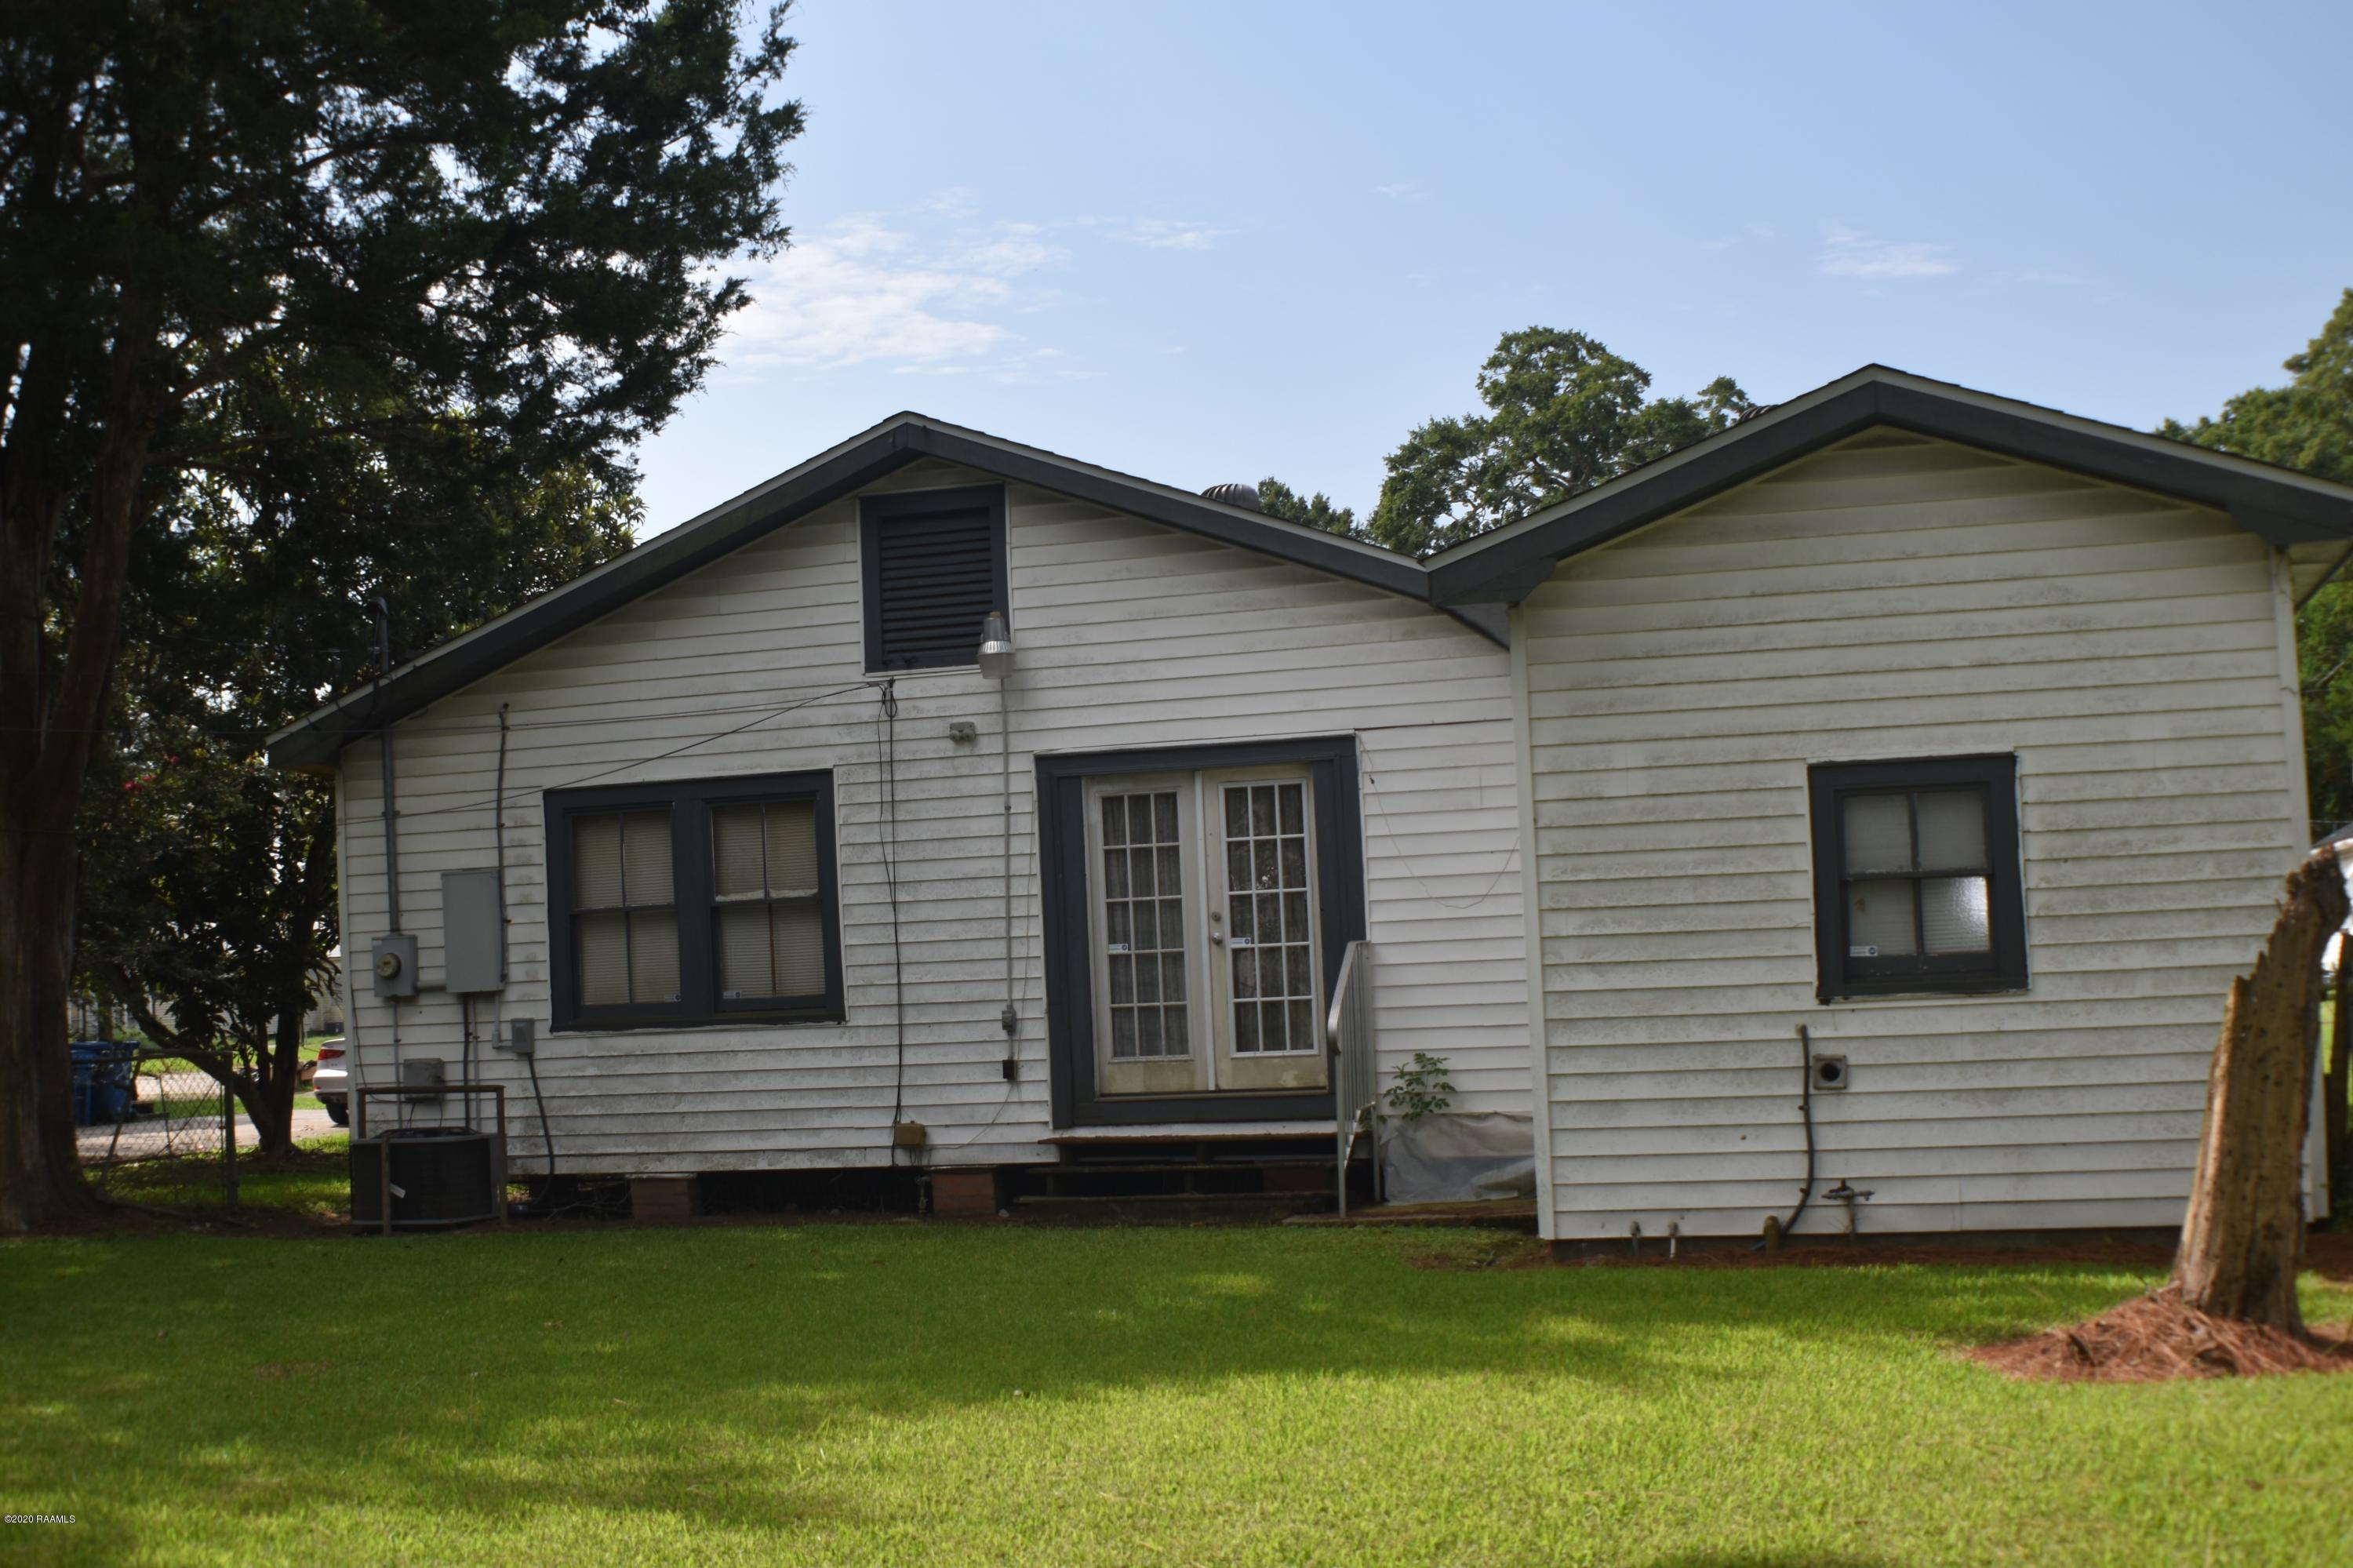 217 Goldman Street, Lafayette, LA 70501 Photo #5